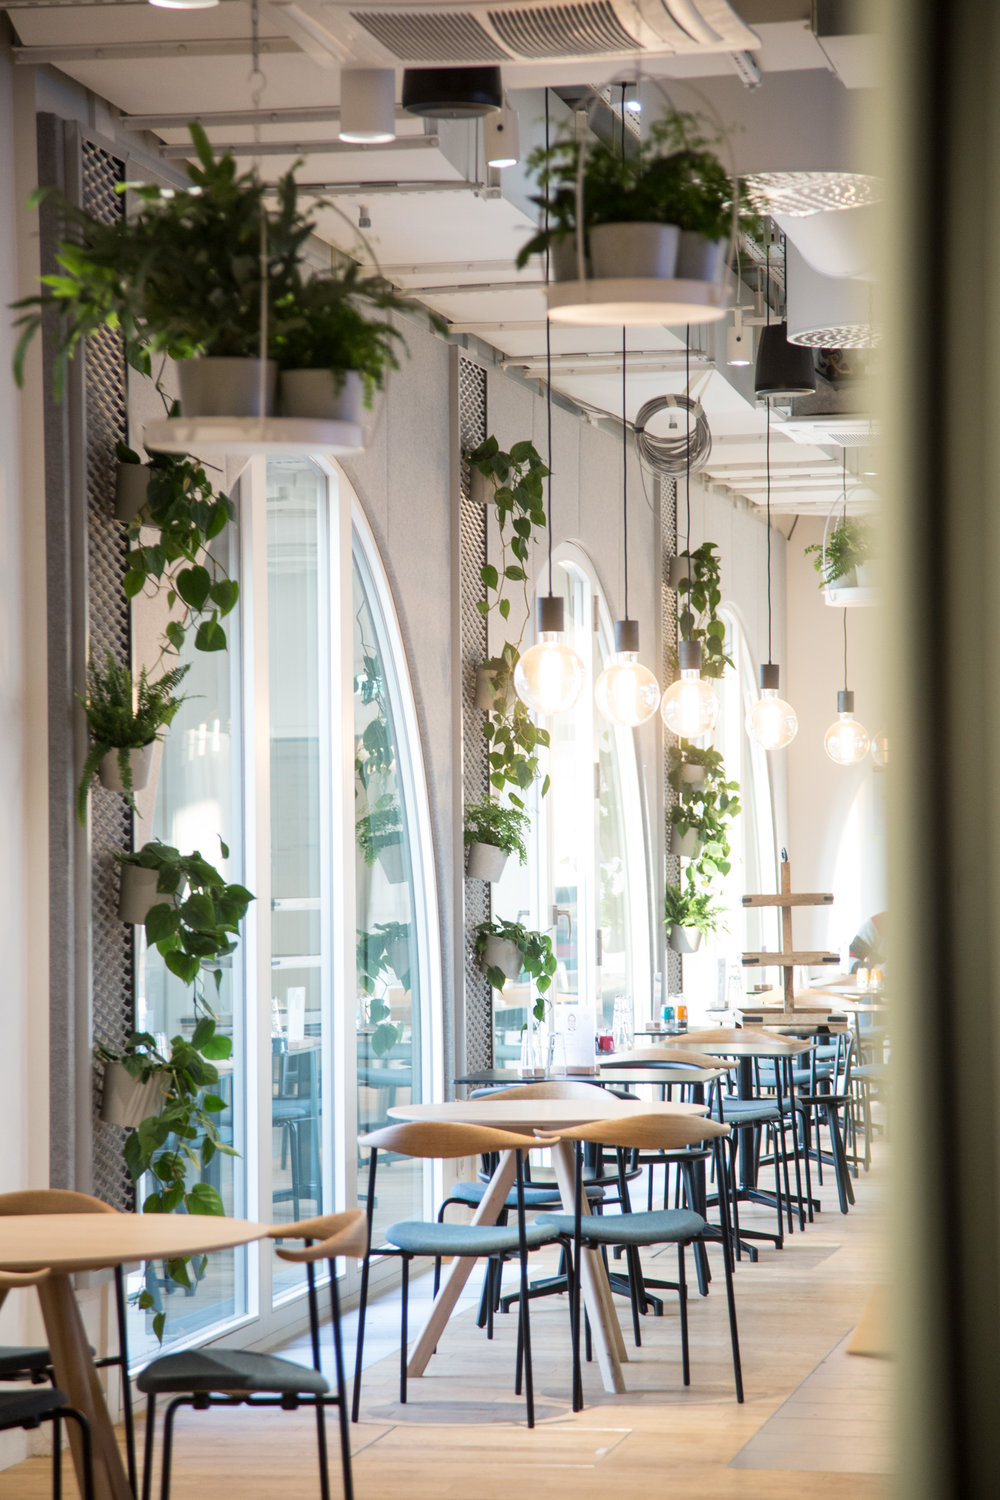 Google Offices - Greenery & Decoration